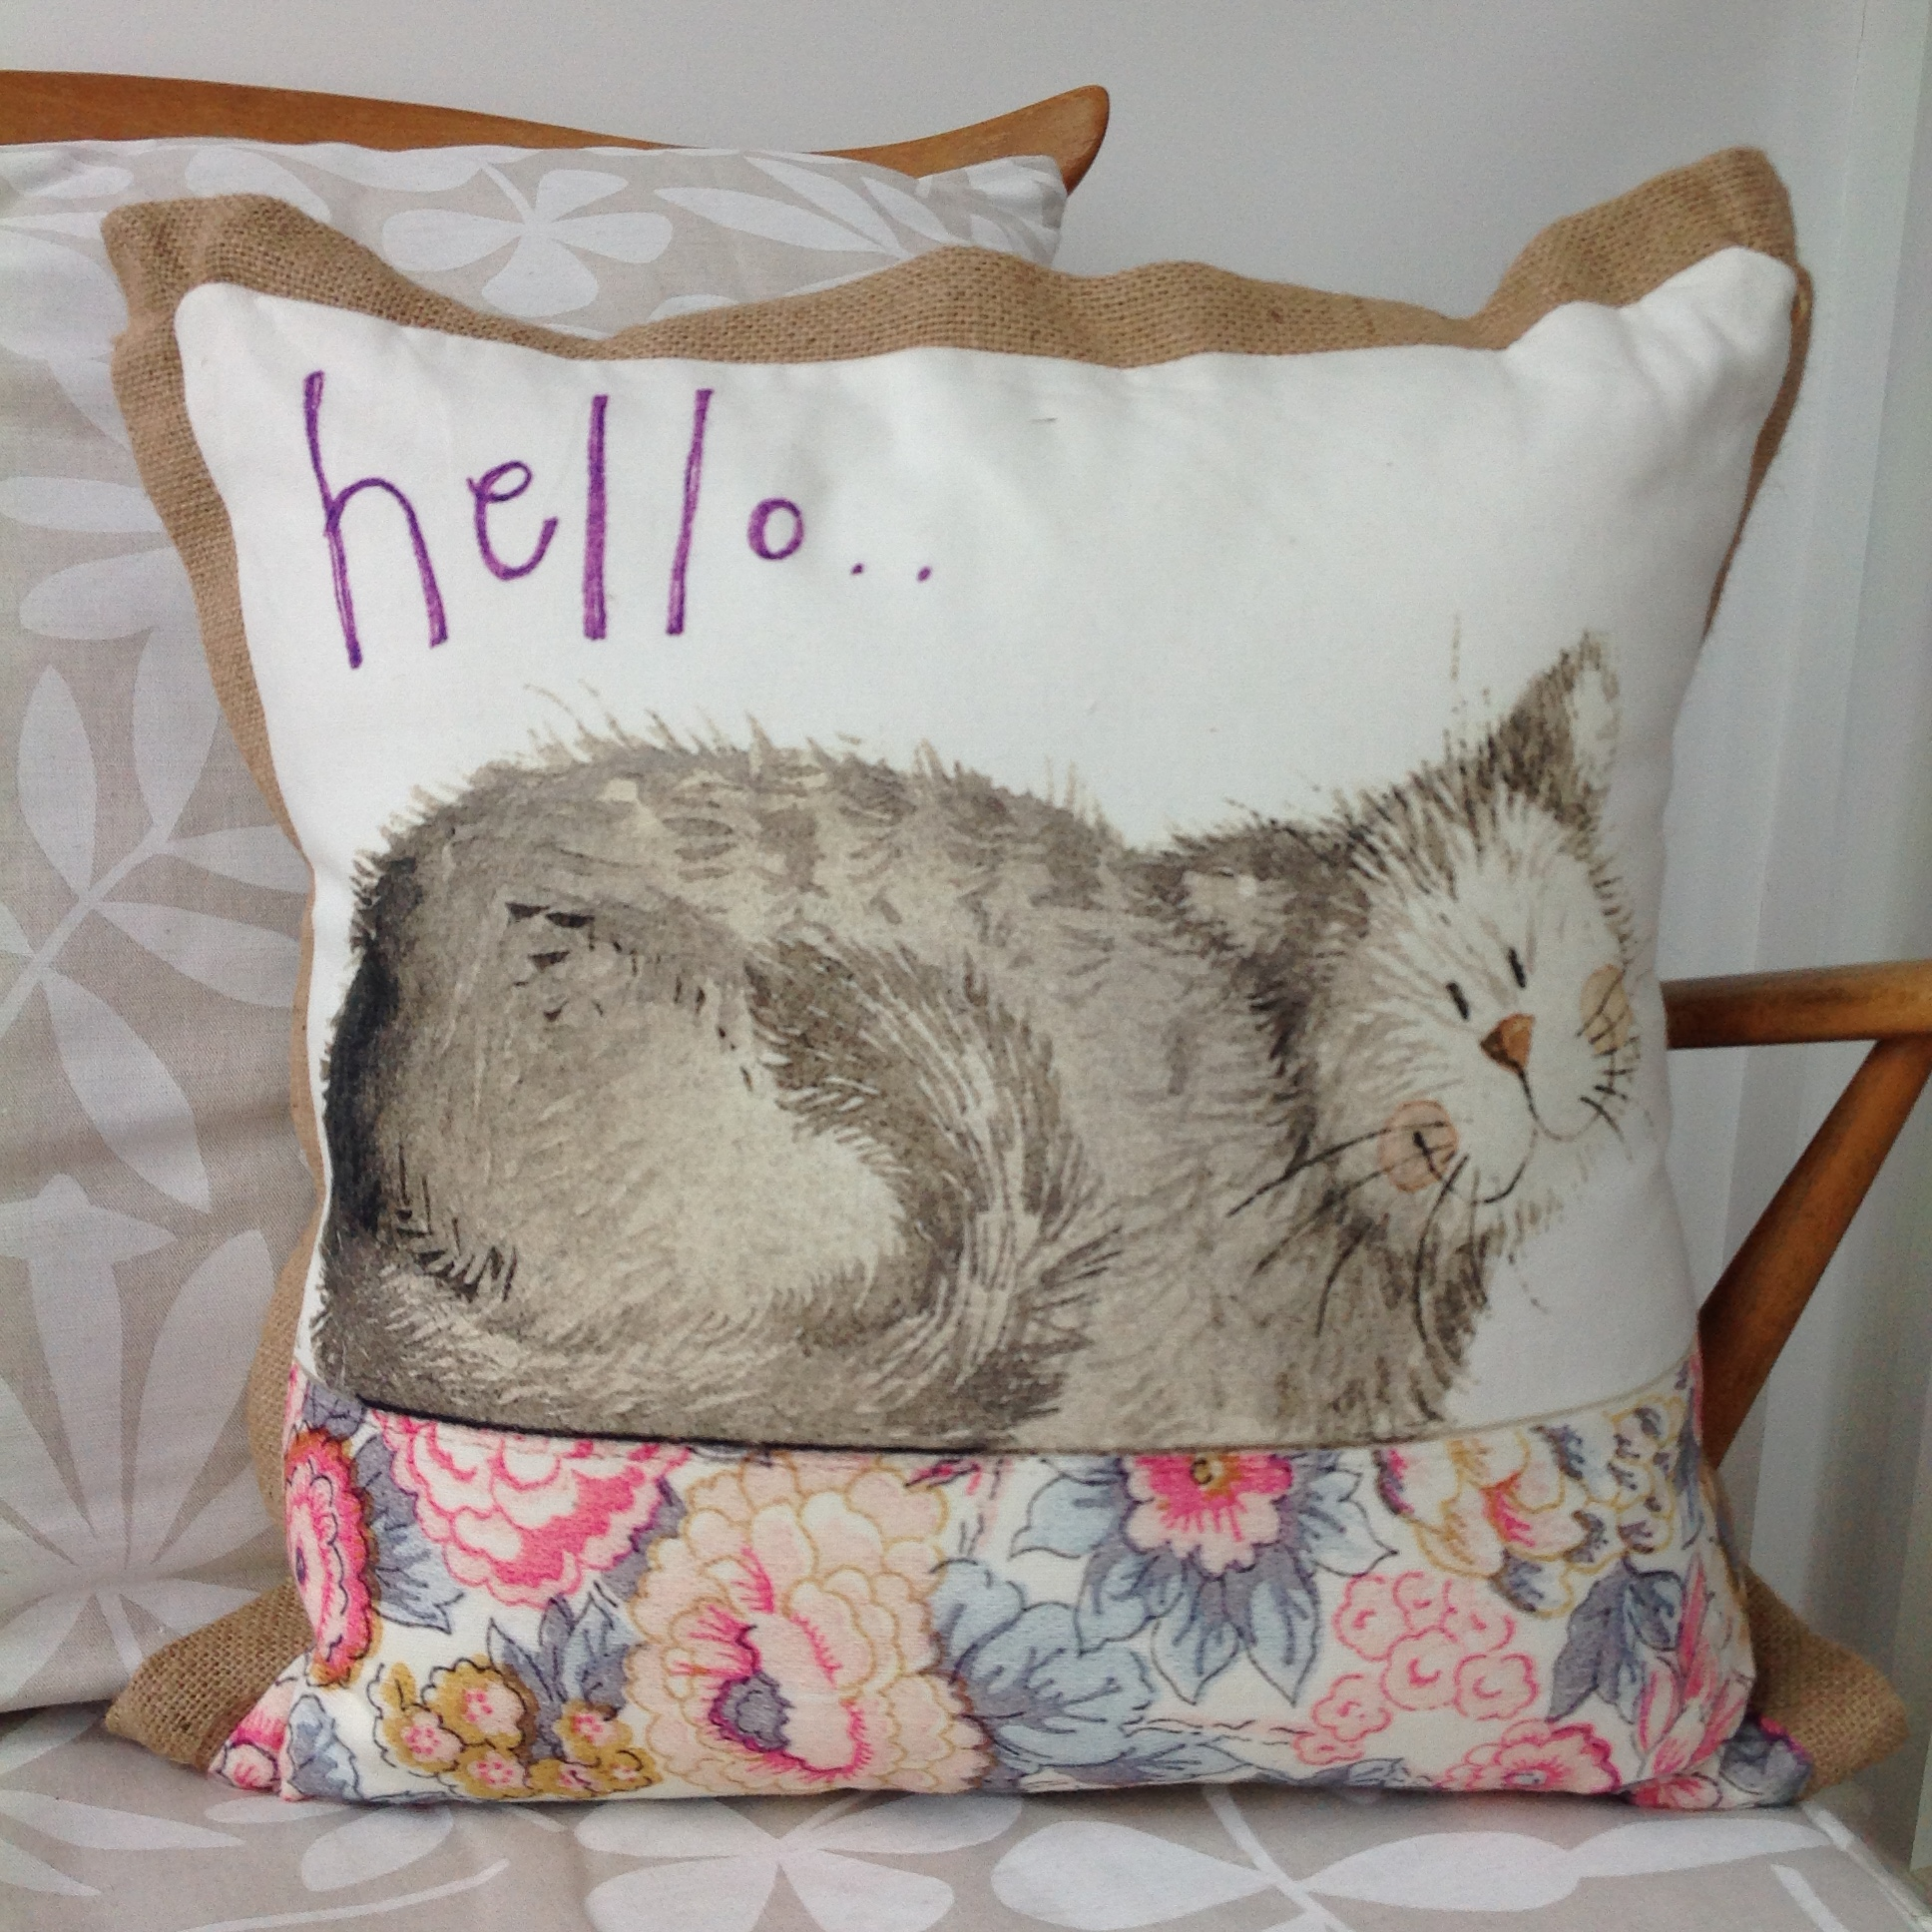 catalog/products/cushions/hello-cushion.JPG